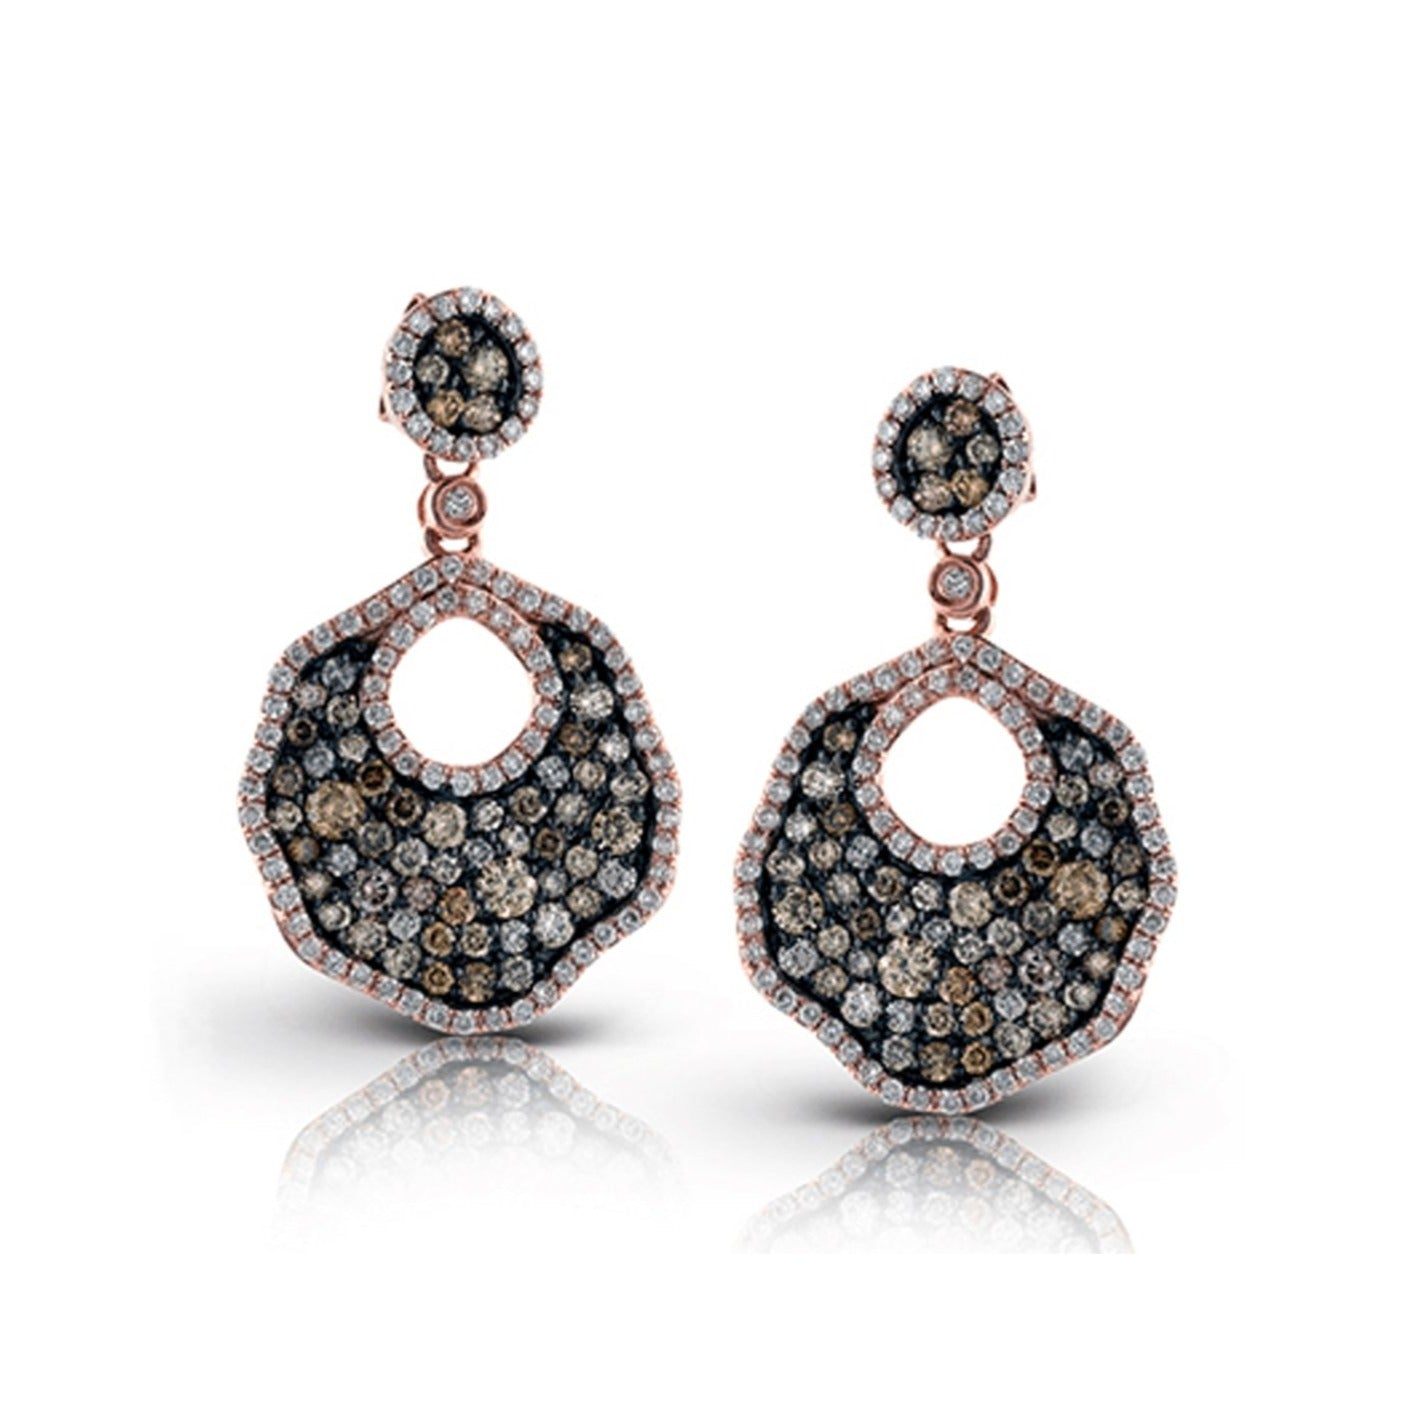 Champagne & White Diamond Open Pave Dangle Earrings